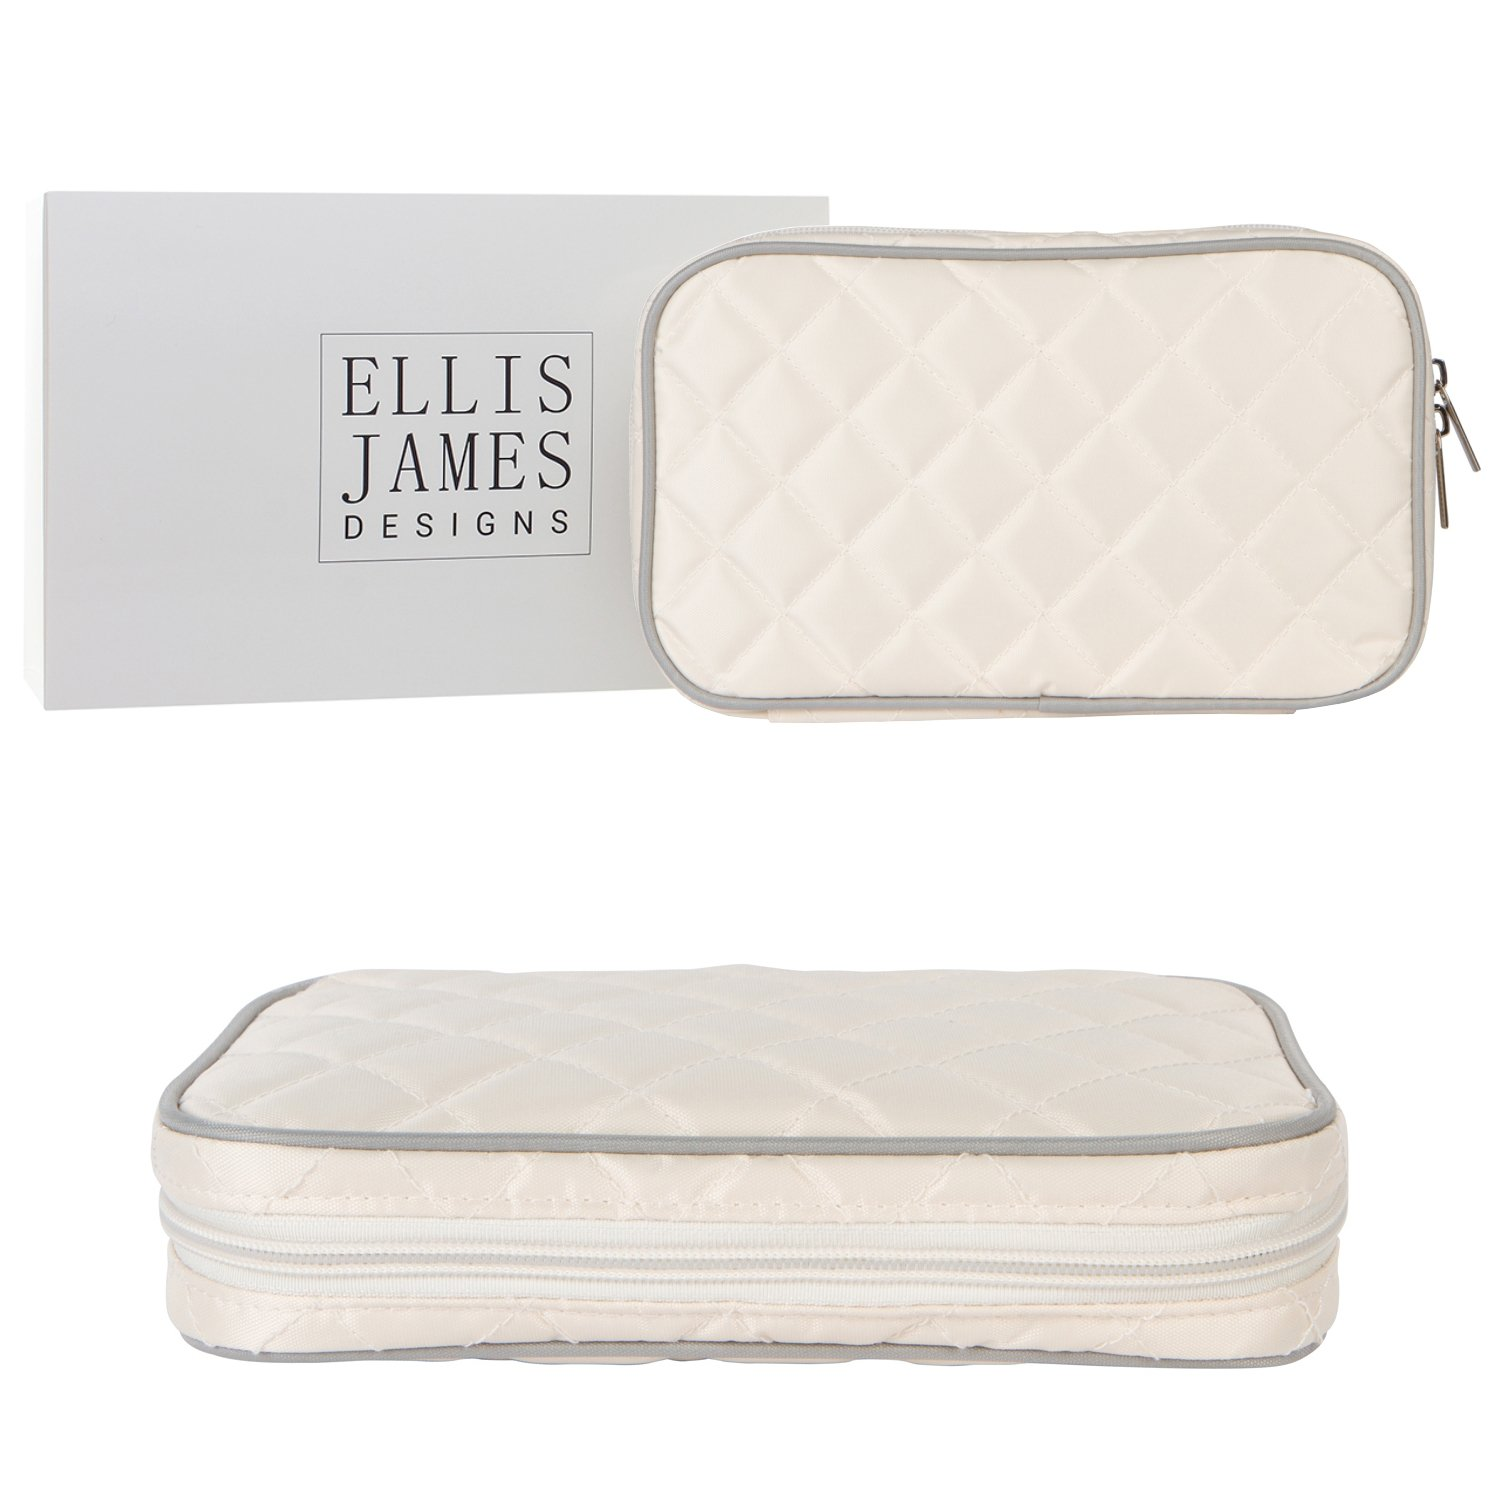 Ellis James Designs Quilted Travel Jewelry Organizer Bag Case - Cream - Soft Padded Traveling Jewelry Roll Pouch with Compartments and Necklace Holder